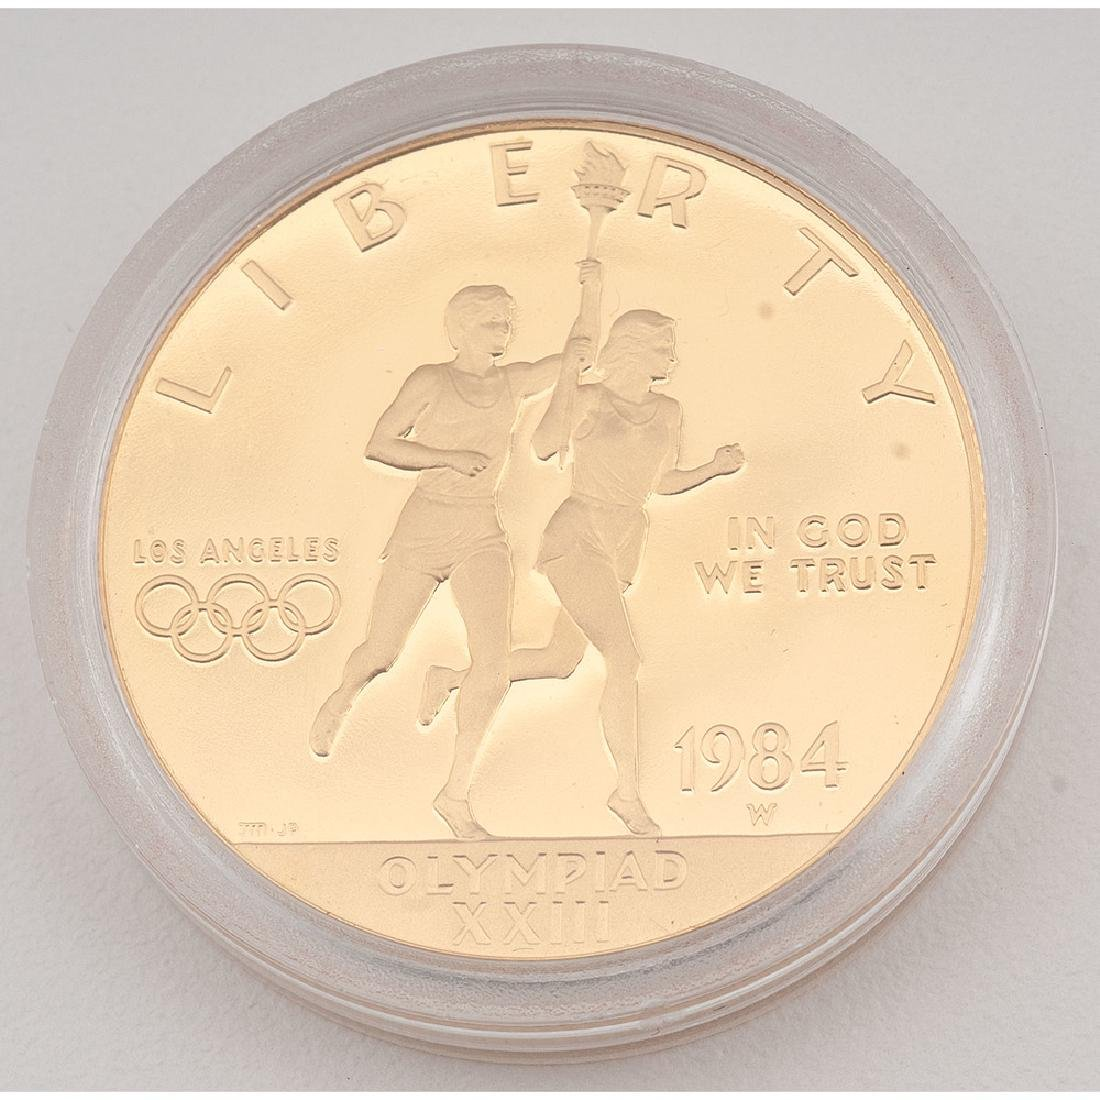 United States Los Angeles Olympiad Commemorative Gold